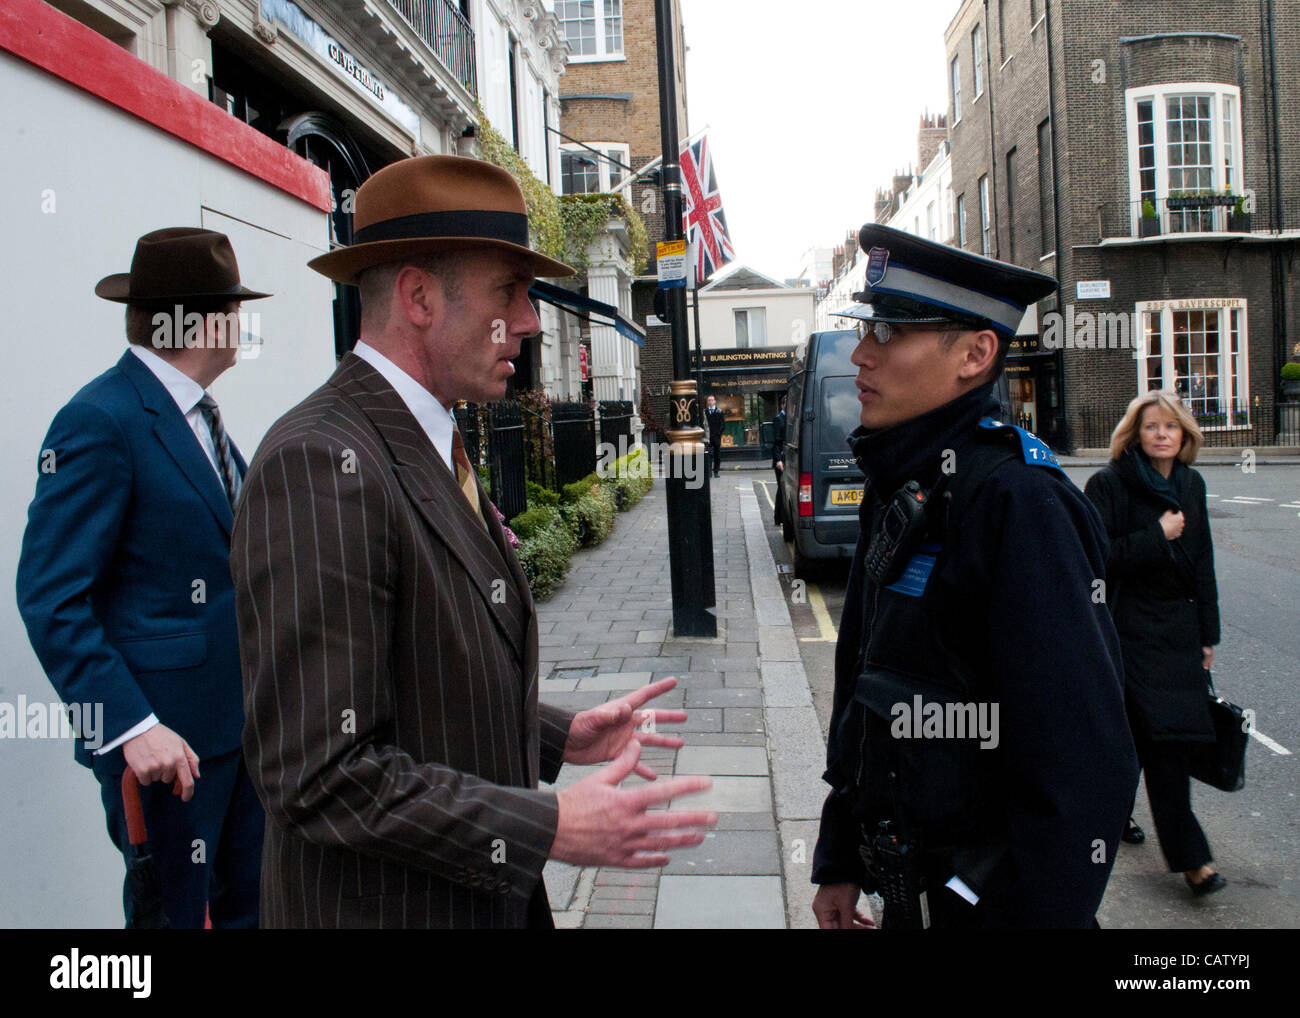 London, UK. 23/04/12. A gentleman of the Chap dealing politely with a Police Community Support Officer, as Chaps - Stock Image